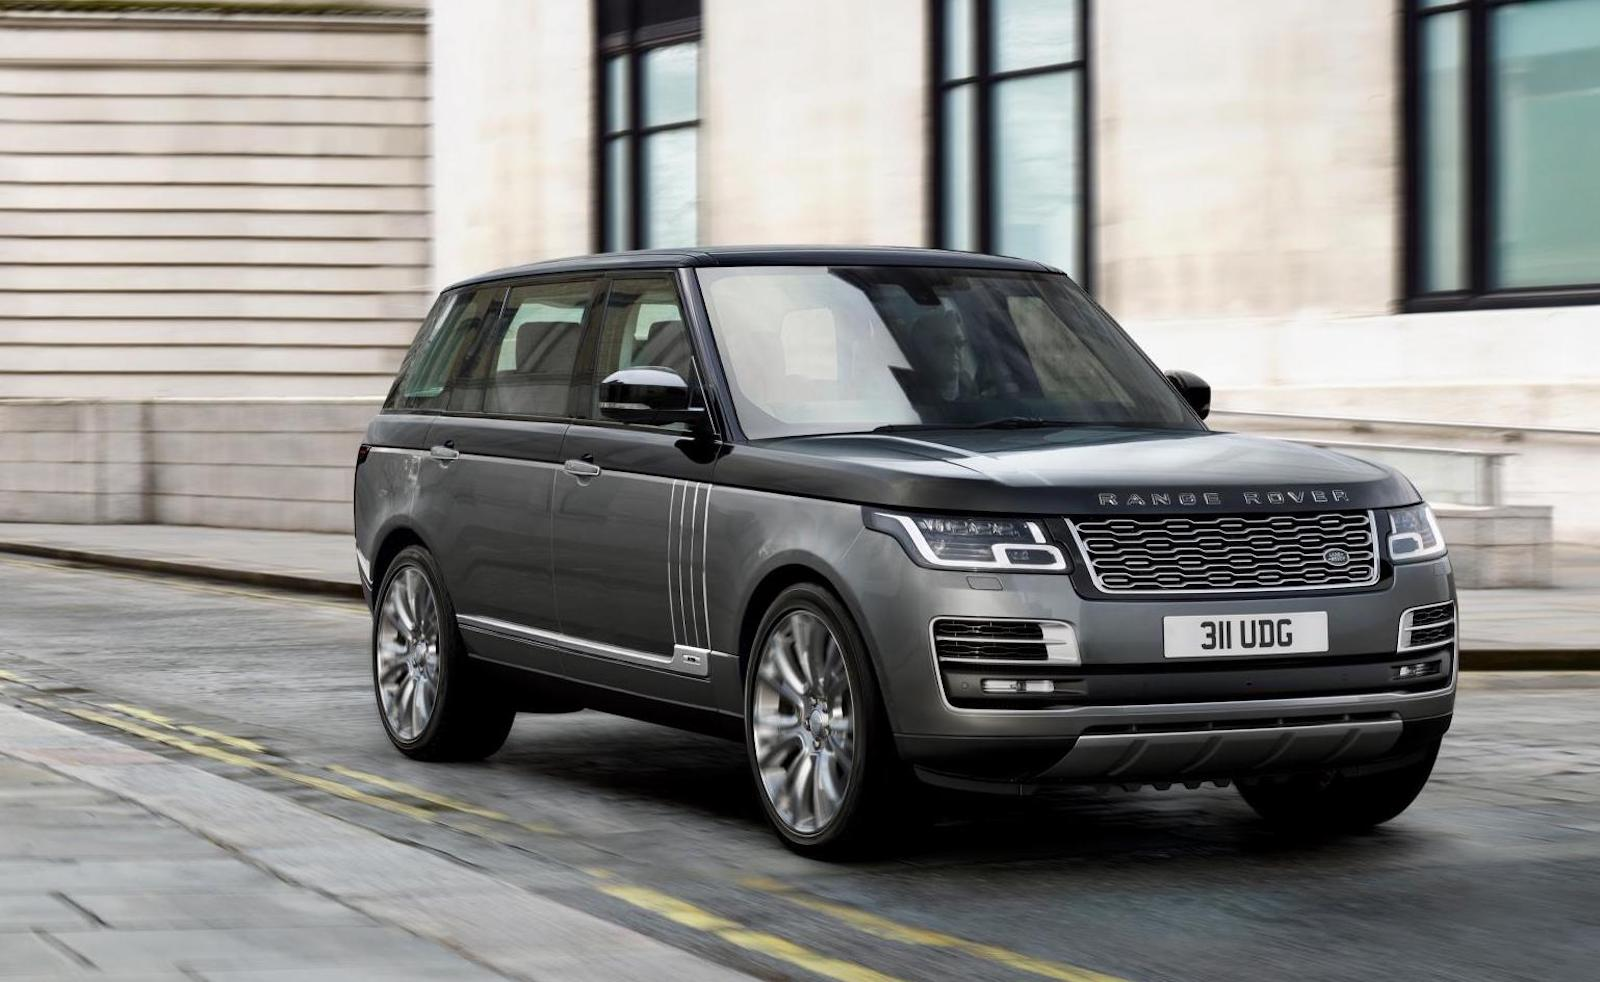 2018 Range Rover Autobiography Debuts With Phev Option